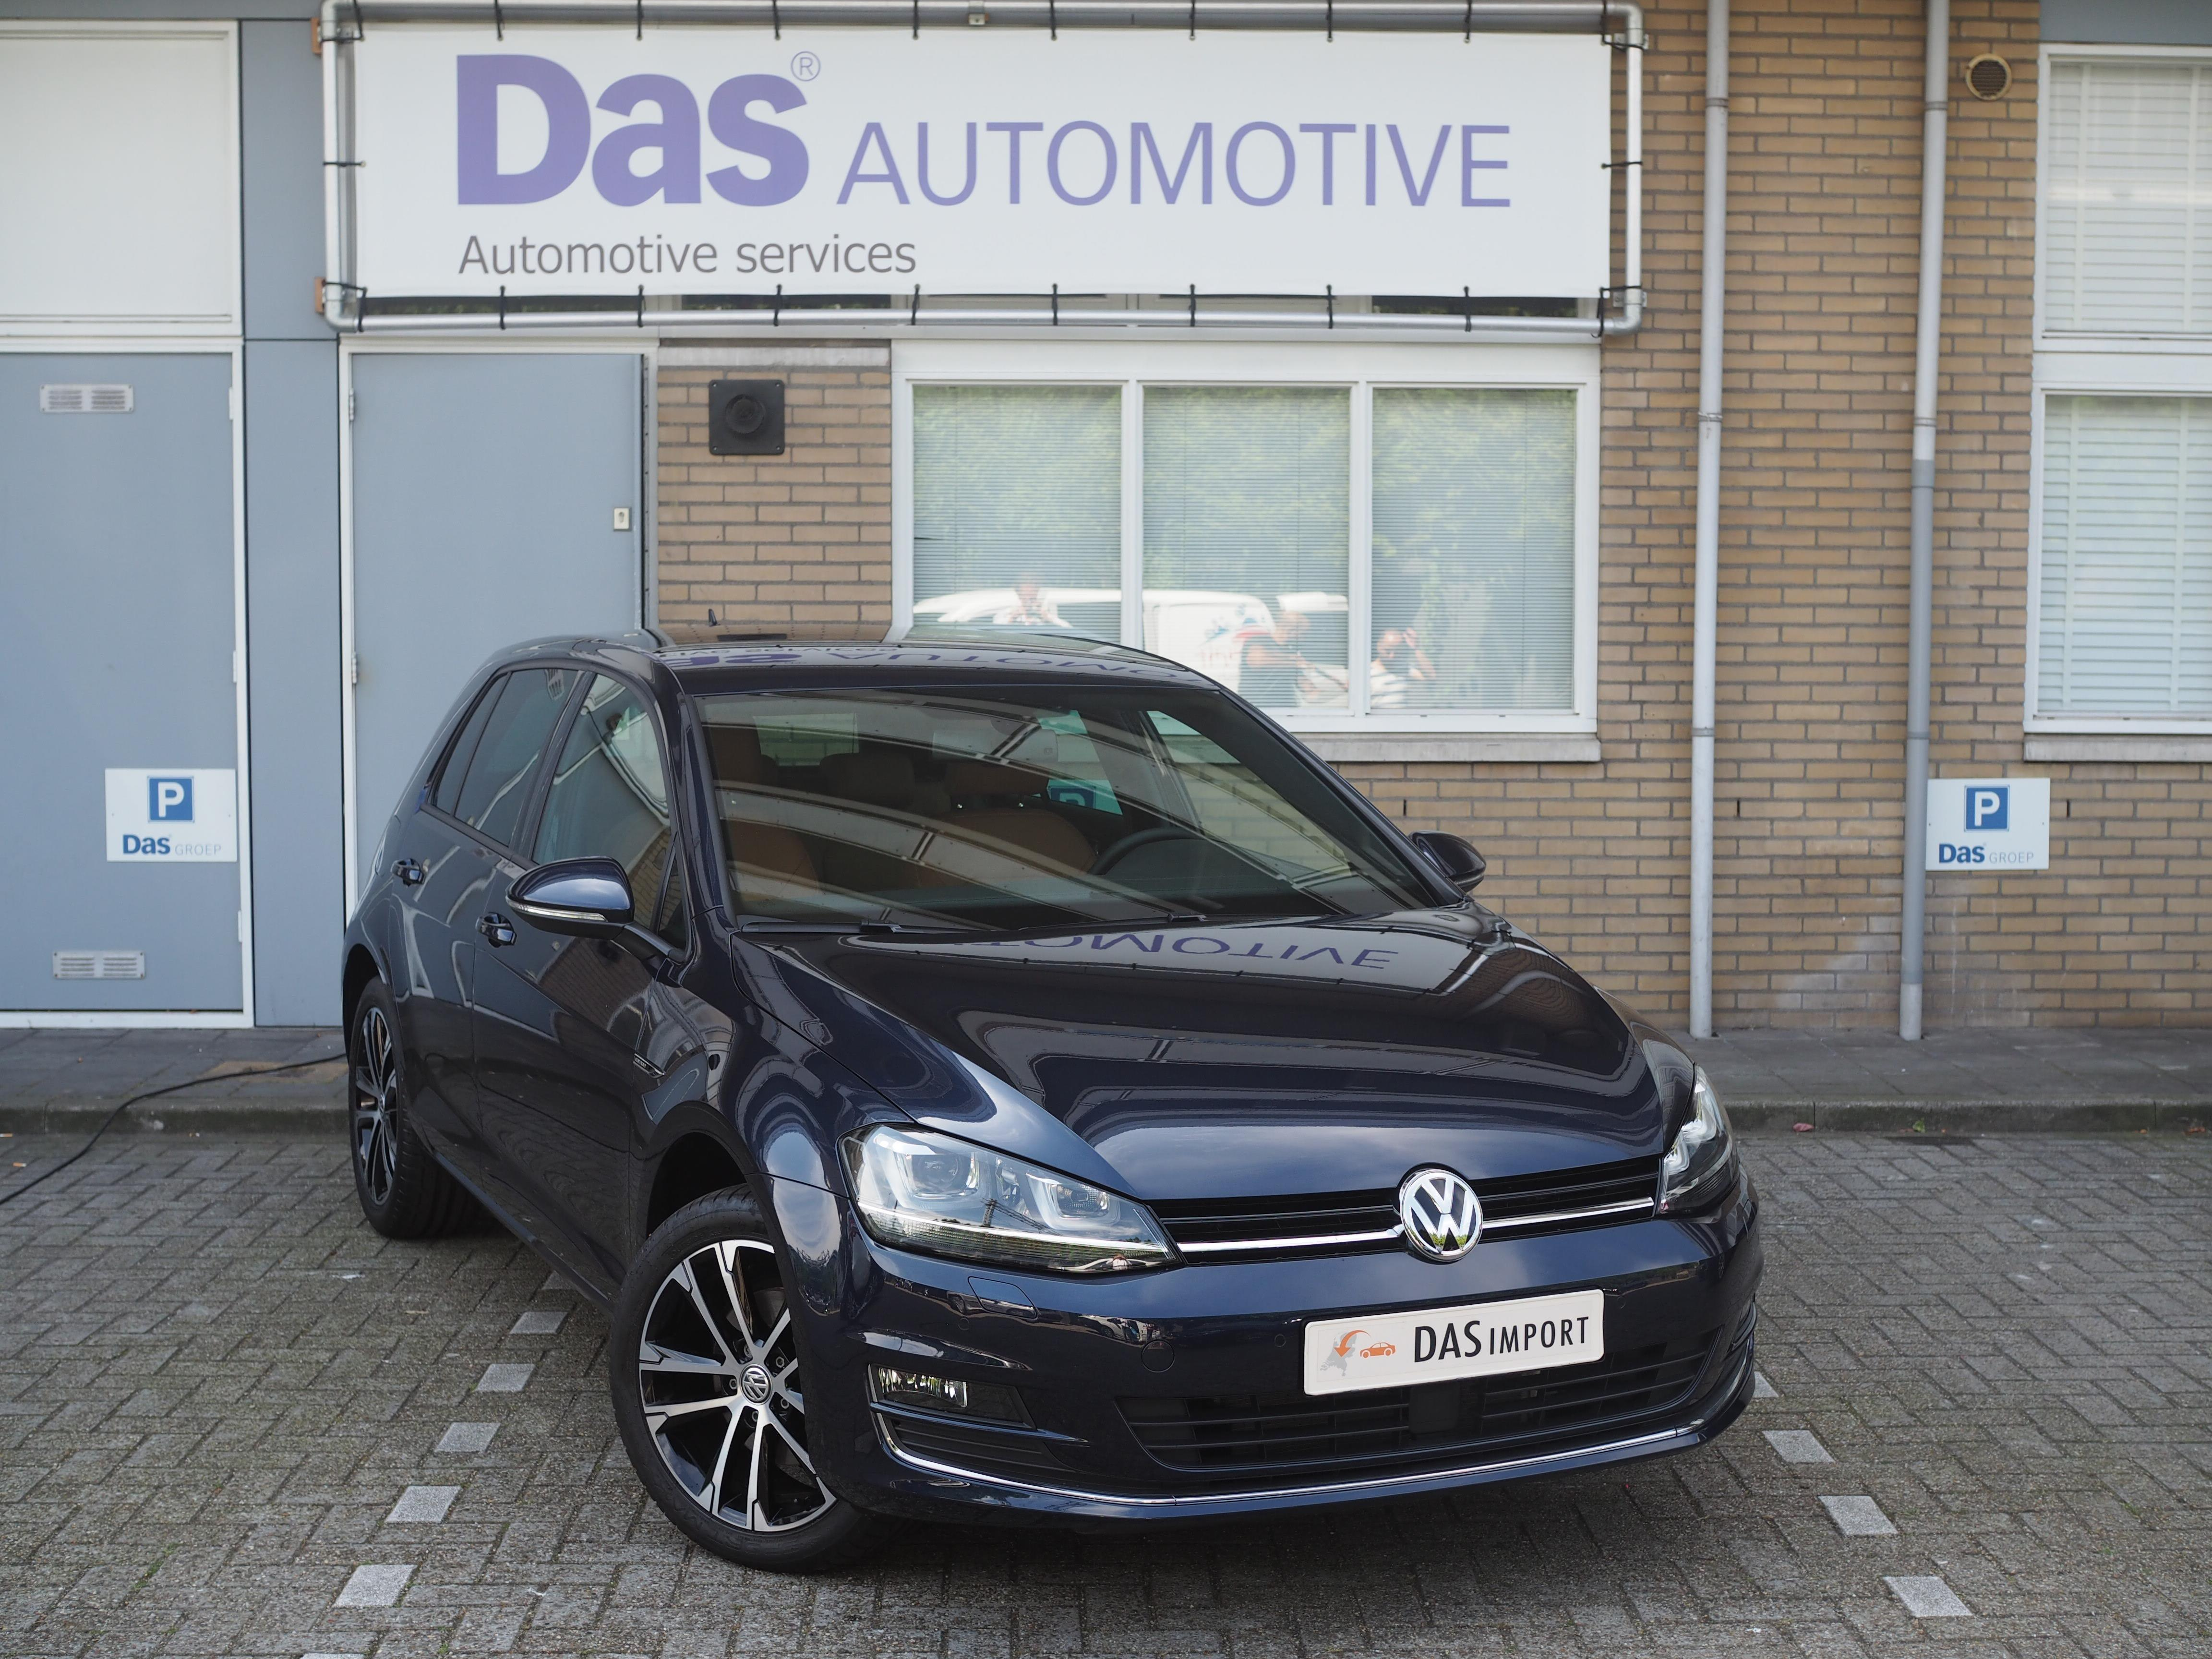 Importauto: Volkswagen Golf VII 1.4 TSI 5d ACT 110kW Business Edition BMT 4/2015